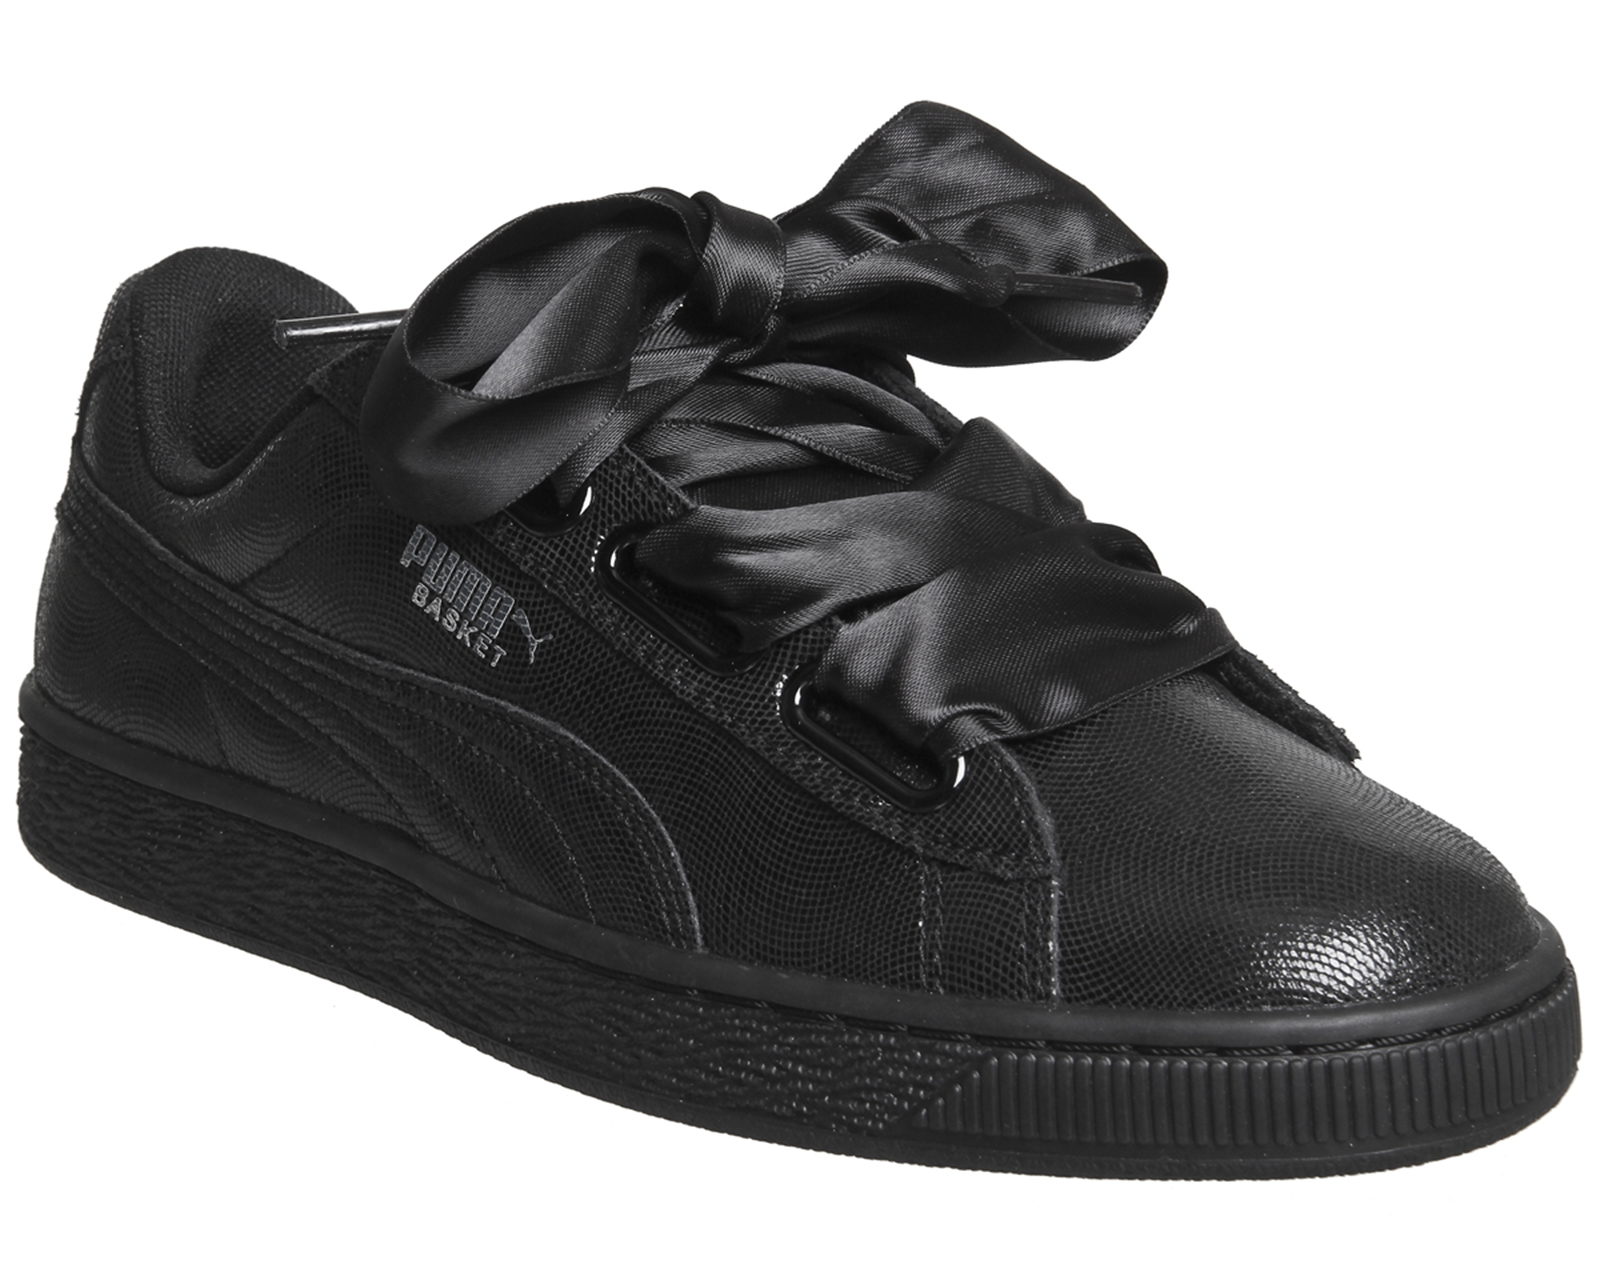 b7c3cc9a2207 Sentinel Womens Puma Basket Heart Trainers Puma Black Shine Trainers Shoes